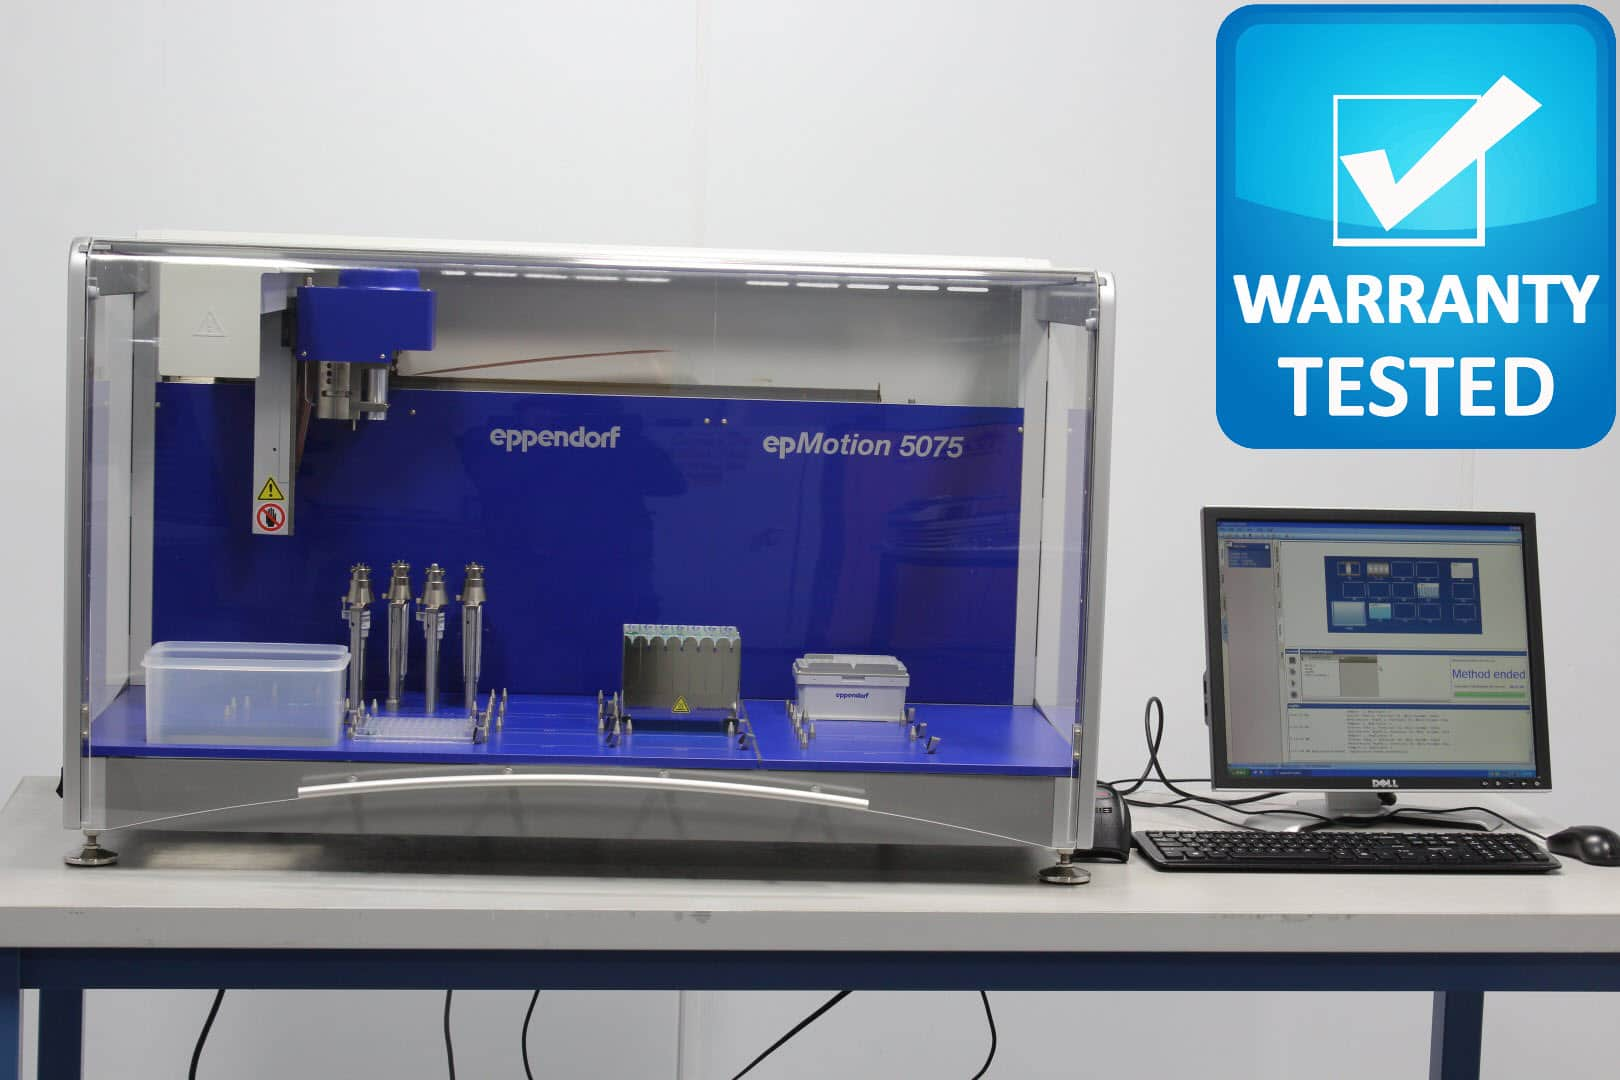 Eppendorf epMotion 5075 Liquid Handler w/ Sample Tracking, GxP